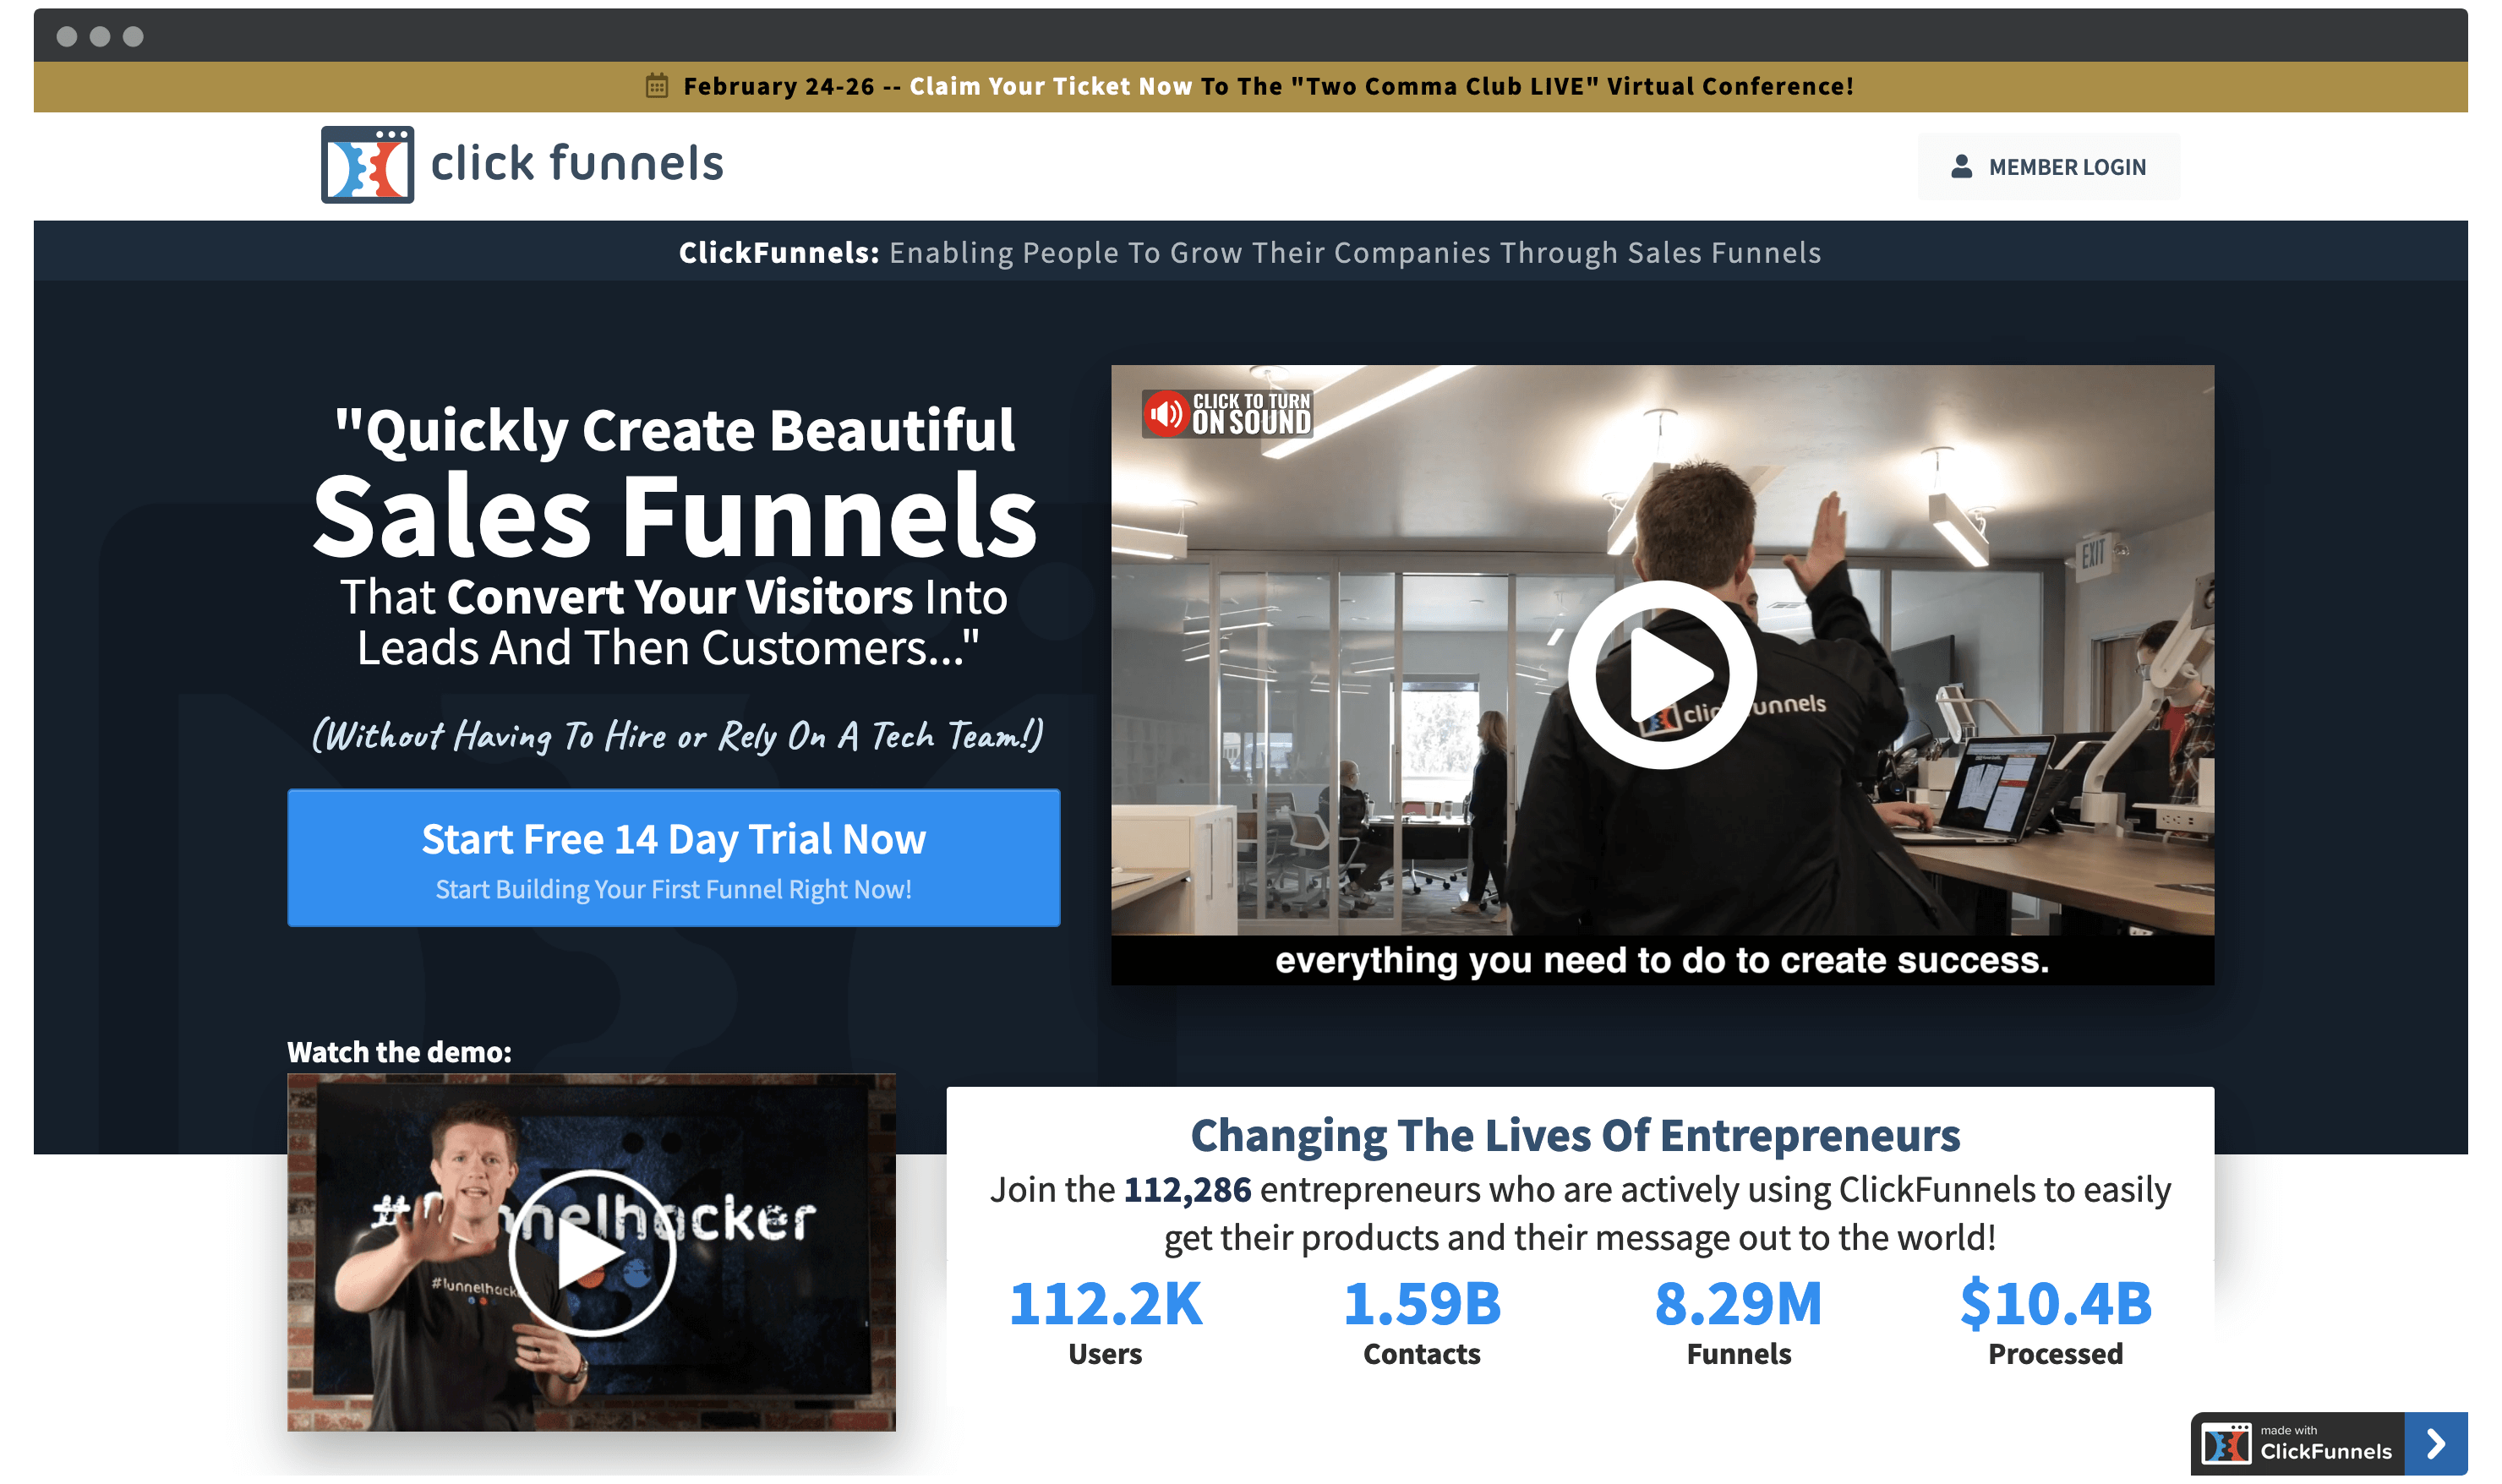 The ClickFunnels home page.